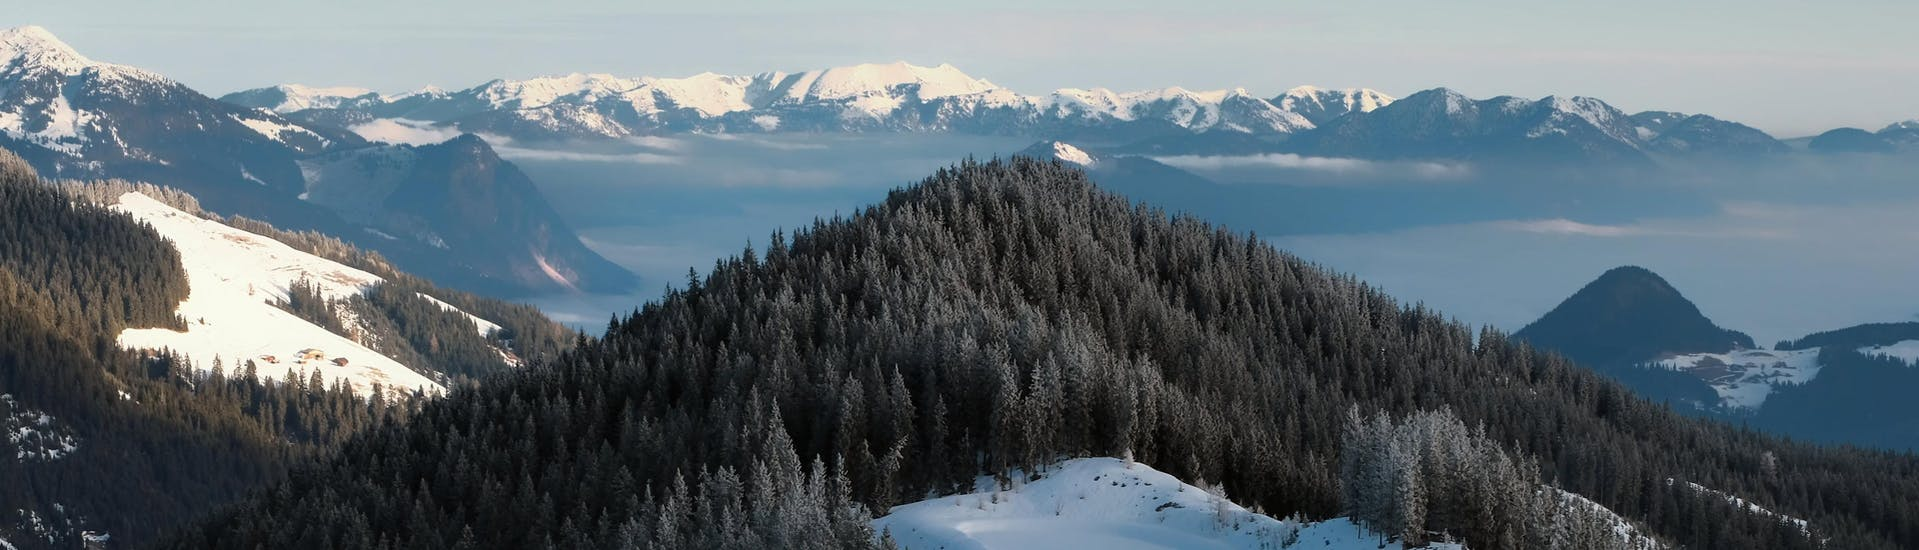 An image of the snow-capped mountains near Kaltenbach, where local ski schools take aspiring skiers for their ski lessons.